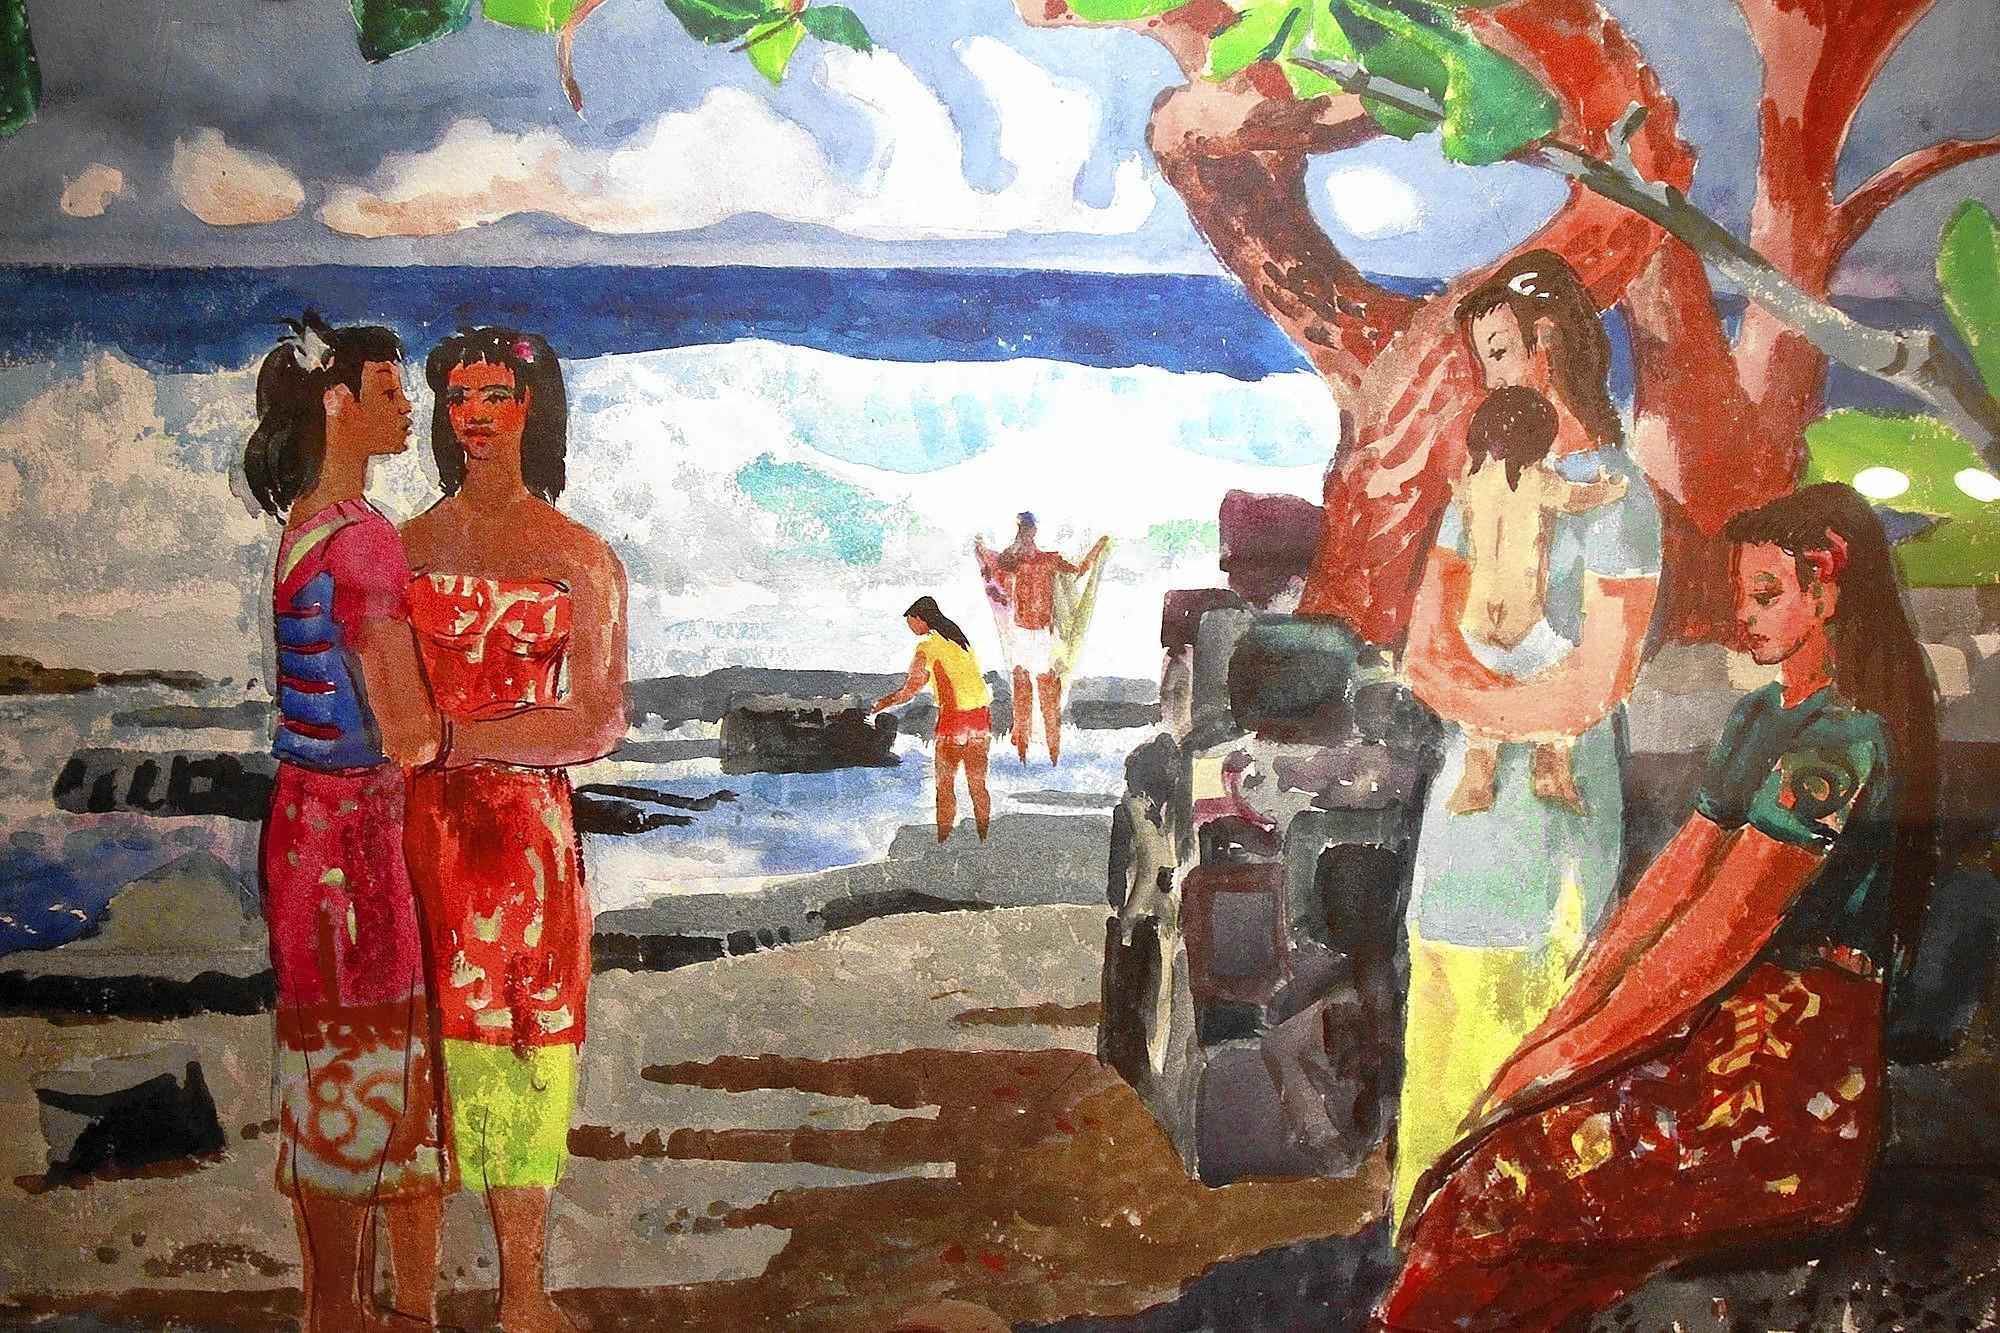 "A scene from Millard Sheet's ""Kamani Trees of Ho'okena,"" 1951, from the collection of Diane and E. Gene Crain, is shown as part of Laguna Art Museum's Spring 2014 season show."